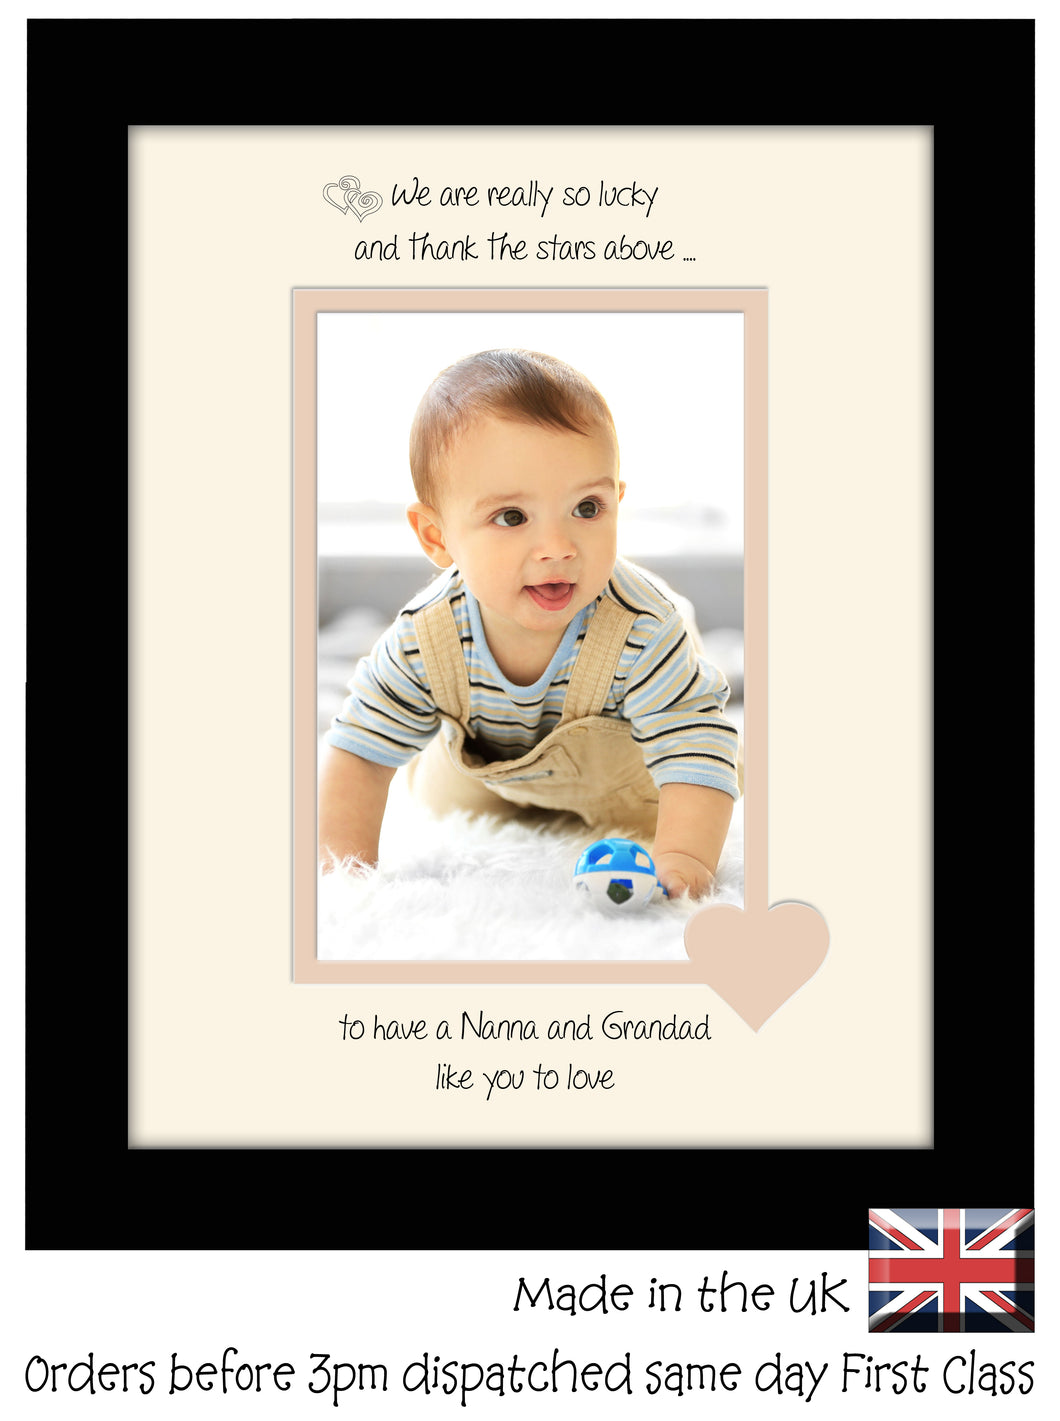 Nanna & Grandad Photo Frame - We Thank the stars Nanna & Grandad Portrait photo frame 6